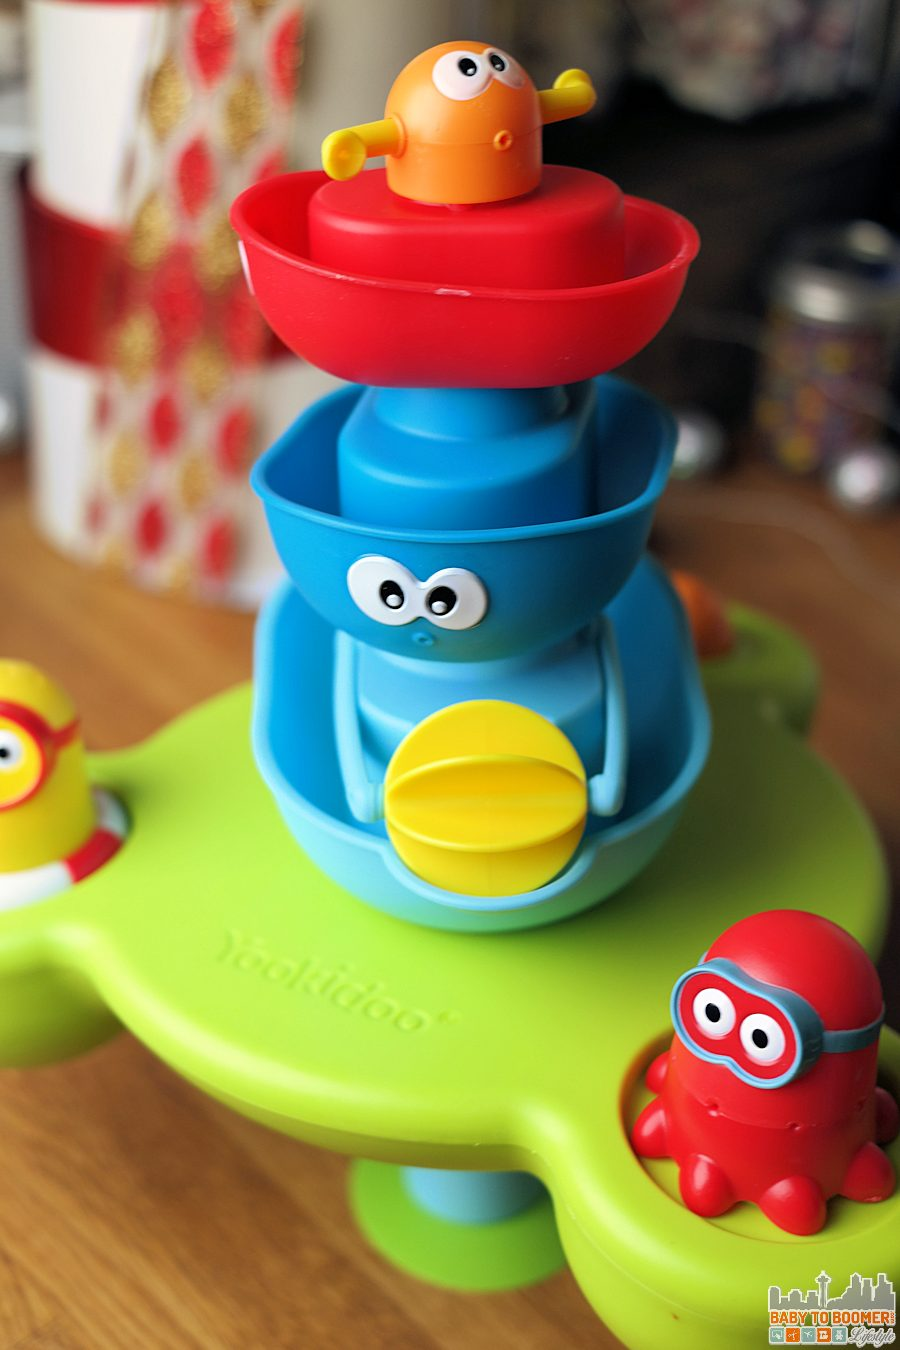 Bathtime Fun! Yookidoo Stack 'N'Spray Tub Fountain ad